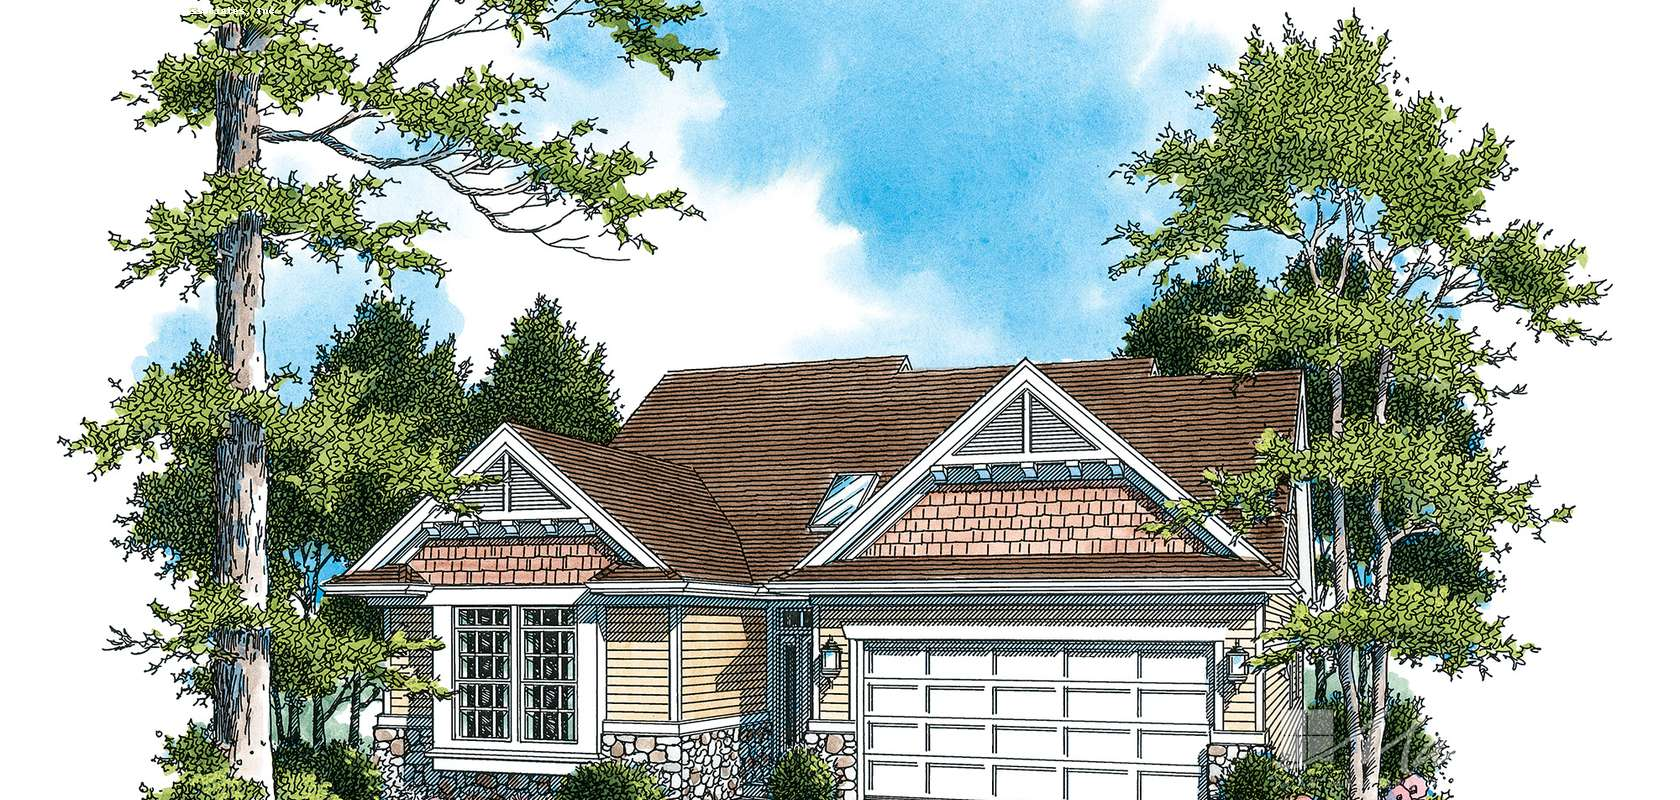 Mascord House Plan 1221B: The Nicole